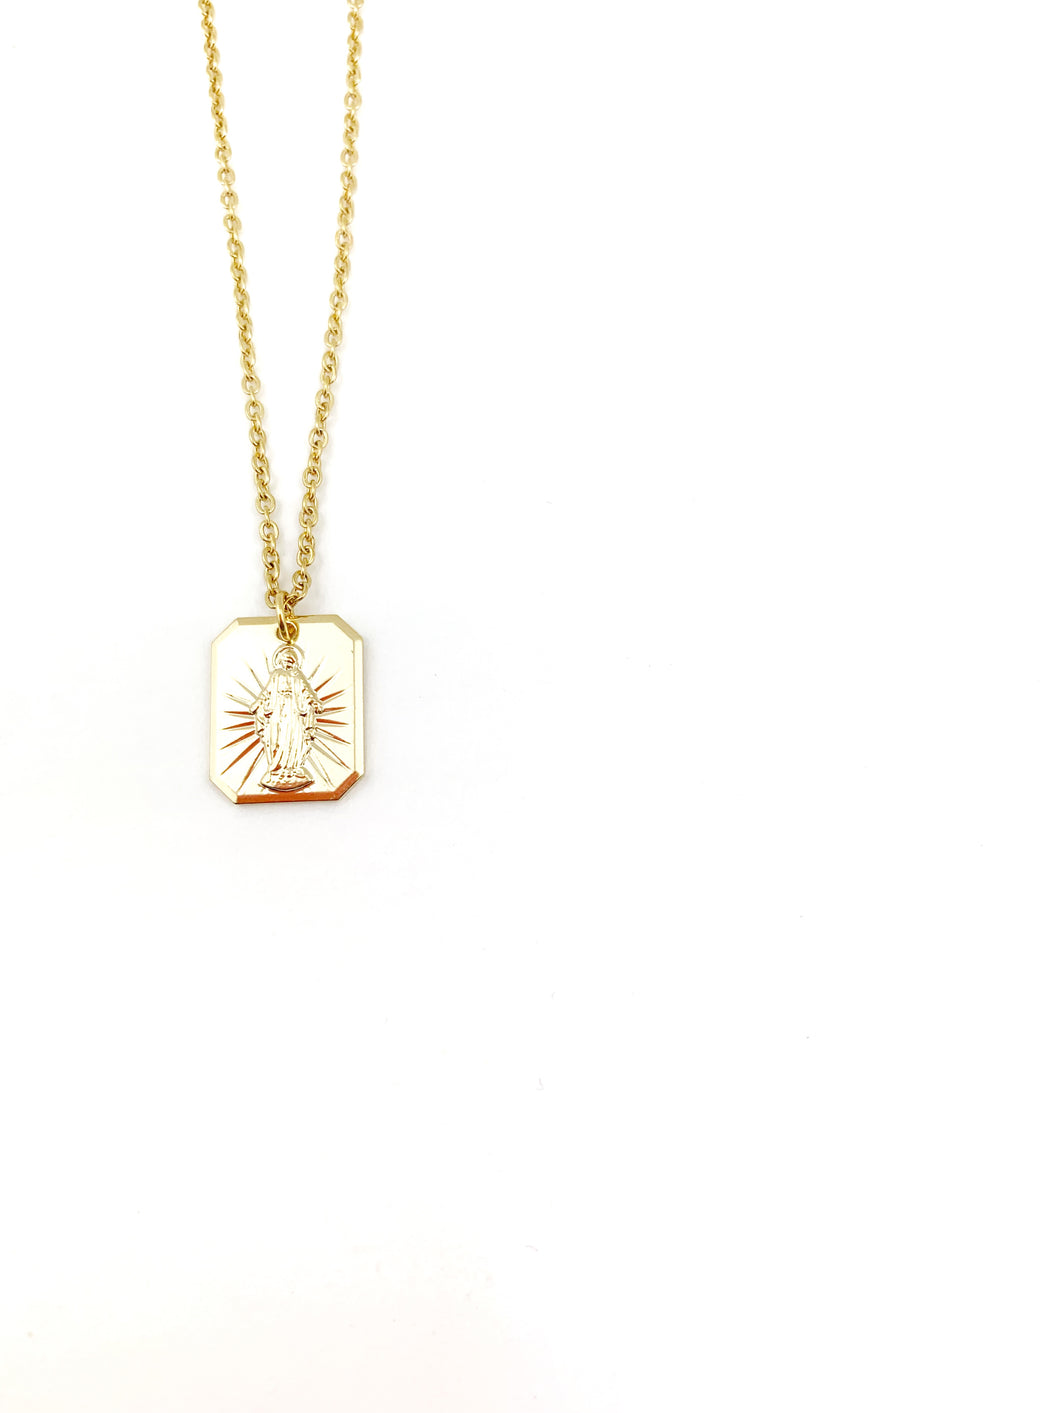 GP Maria Medal Necklace - LoobanysJewelry